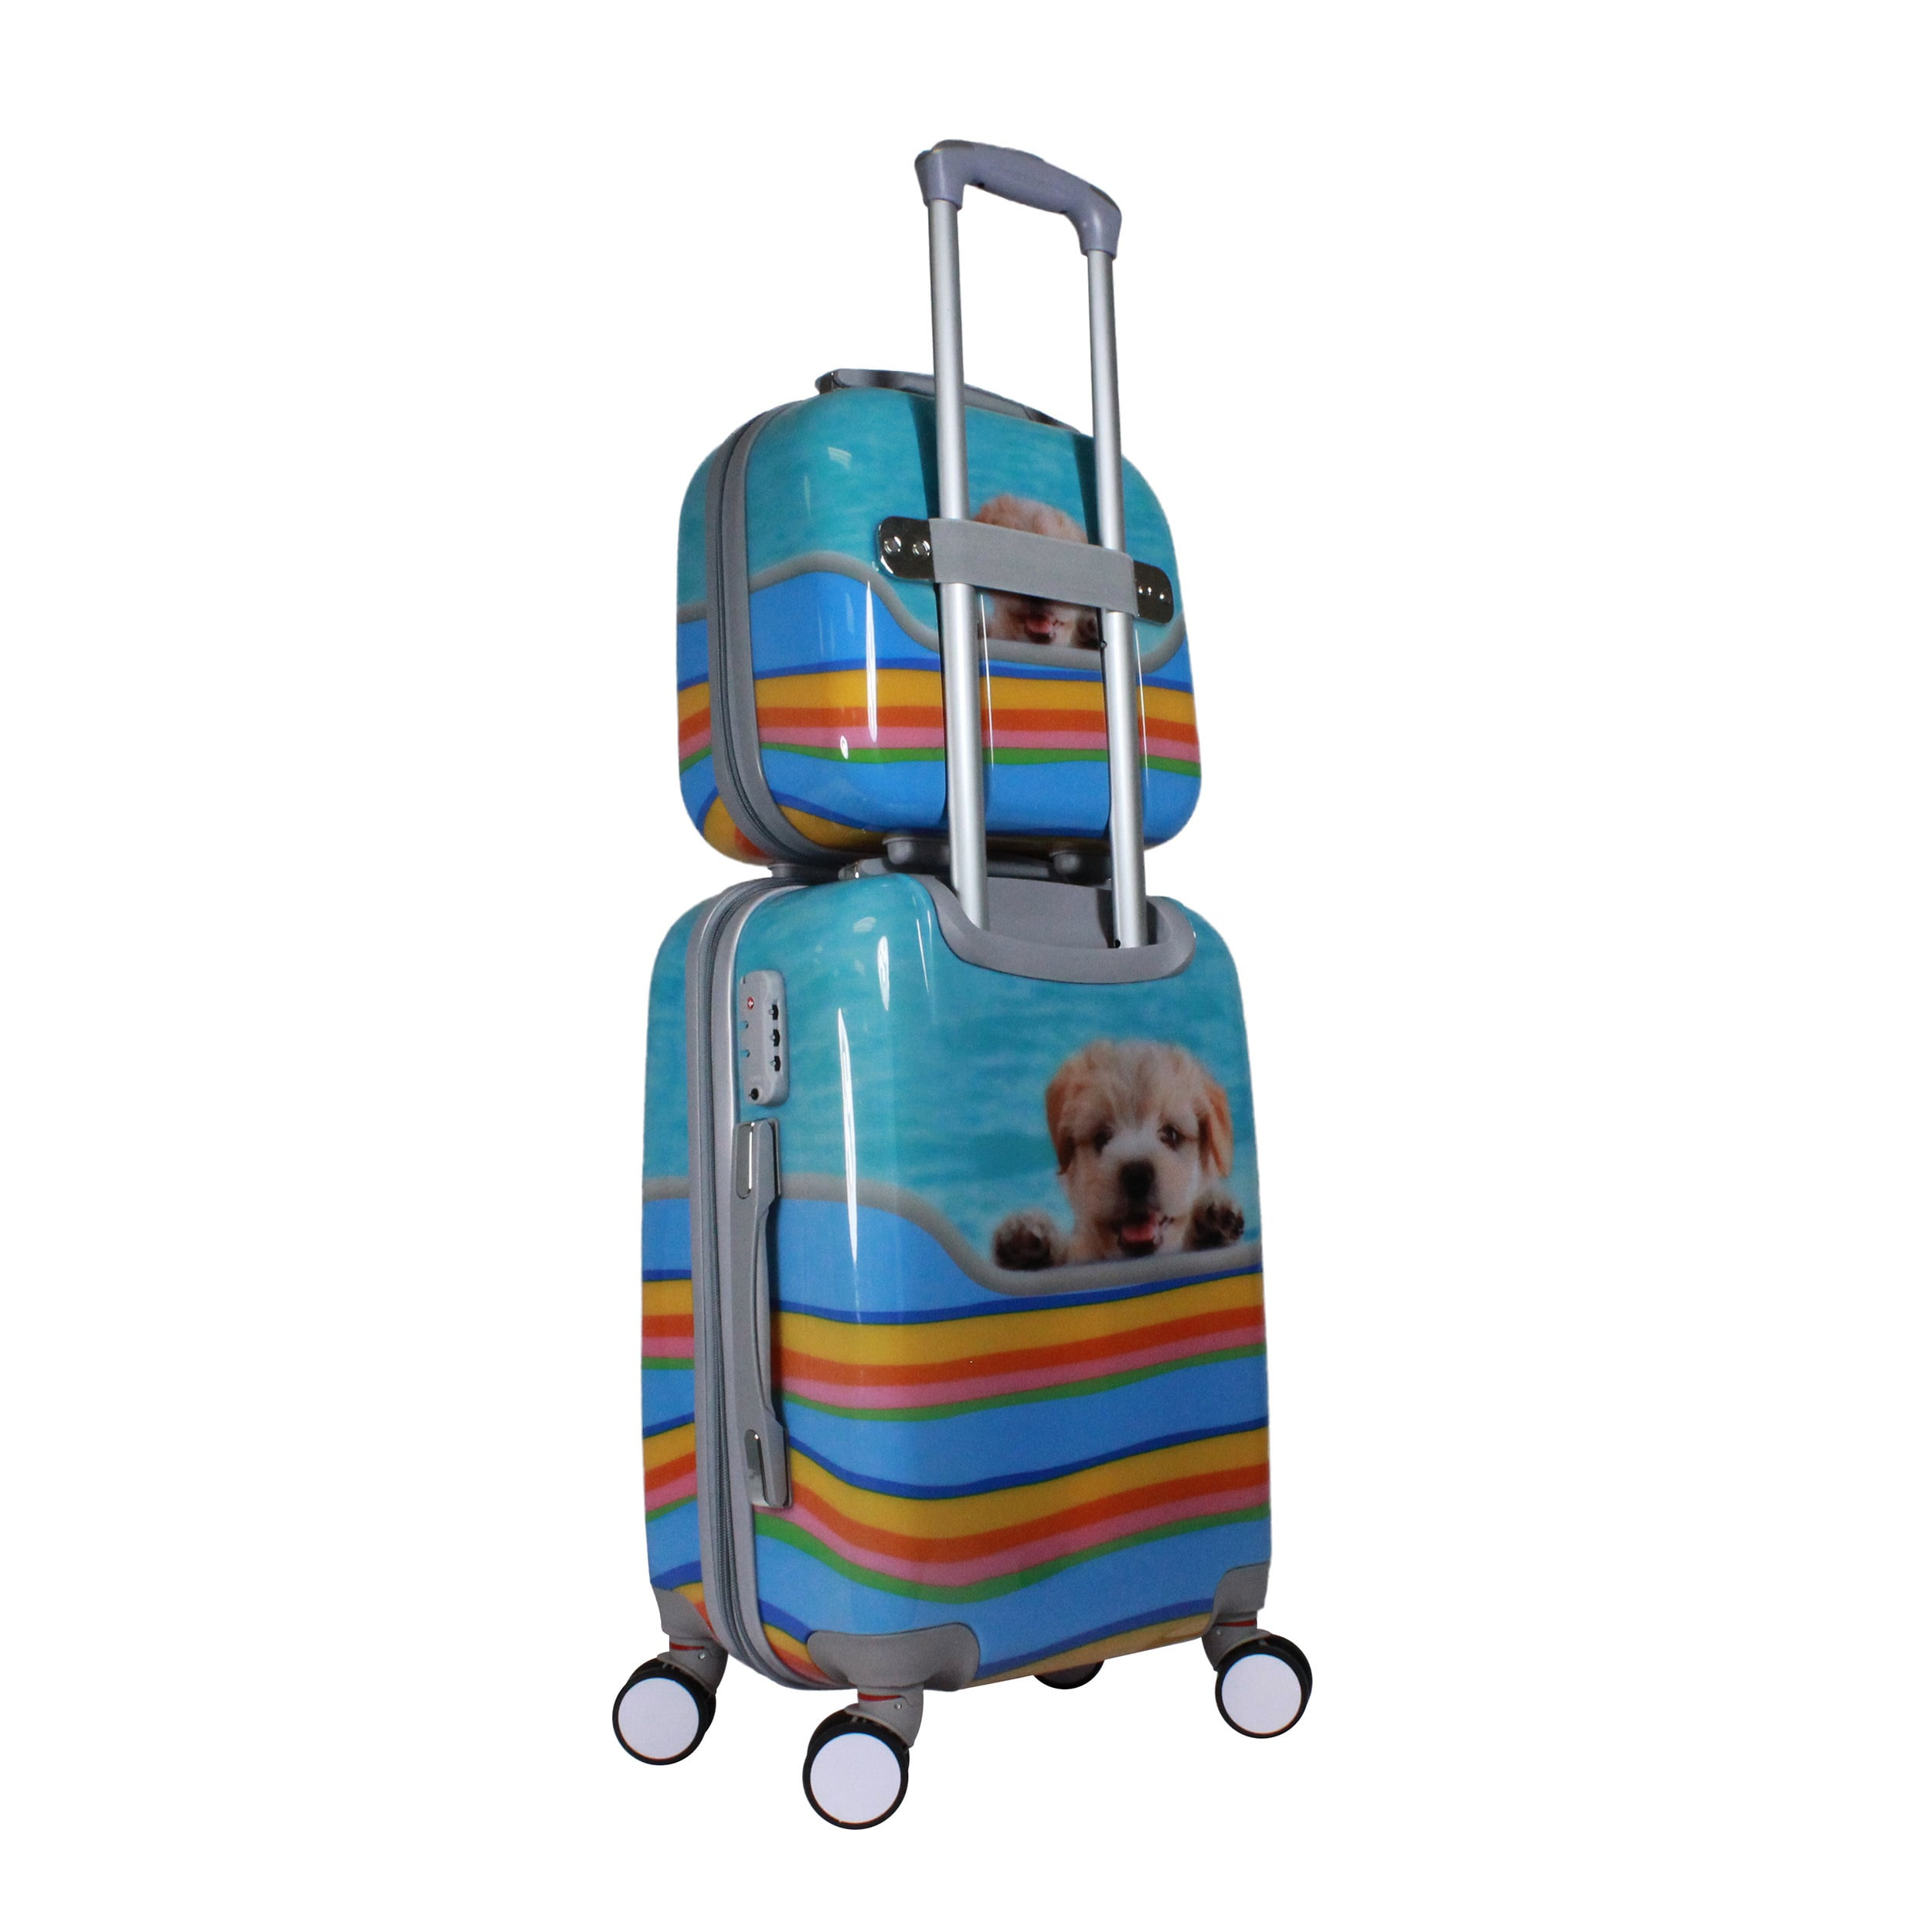 Cute Puppy Dog 2 Piece Hardside Carry On Spinner Luggage Set With Tsa Lock